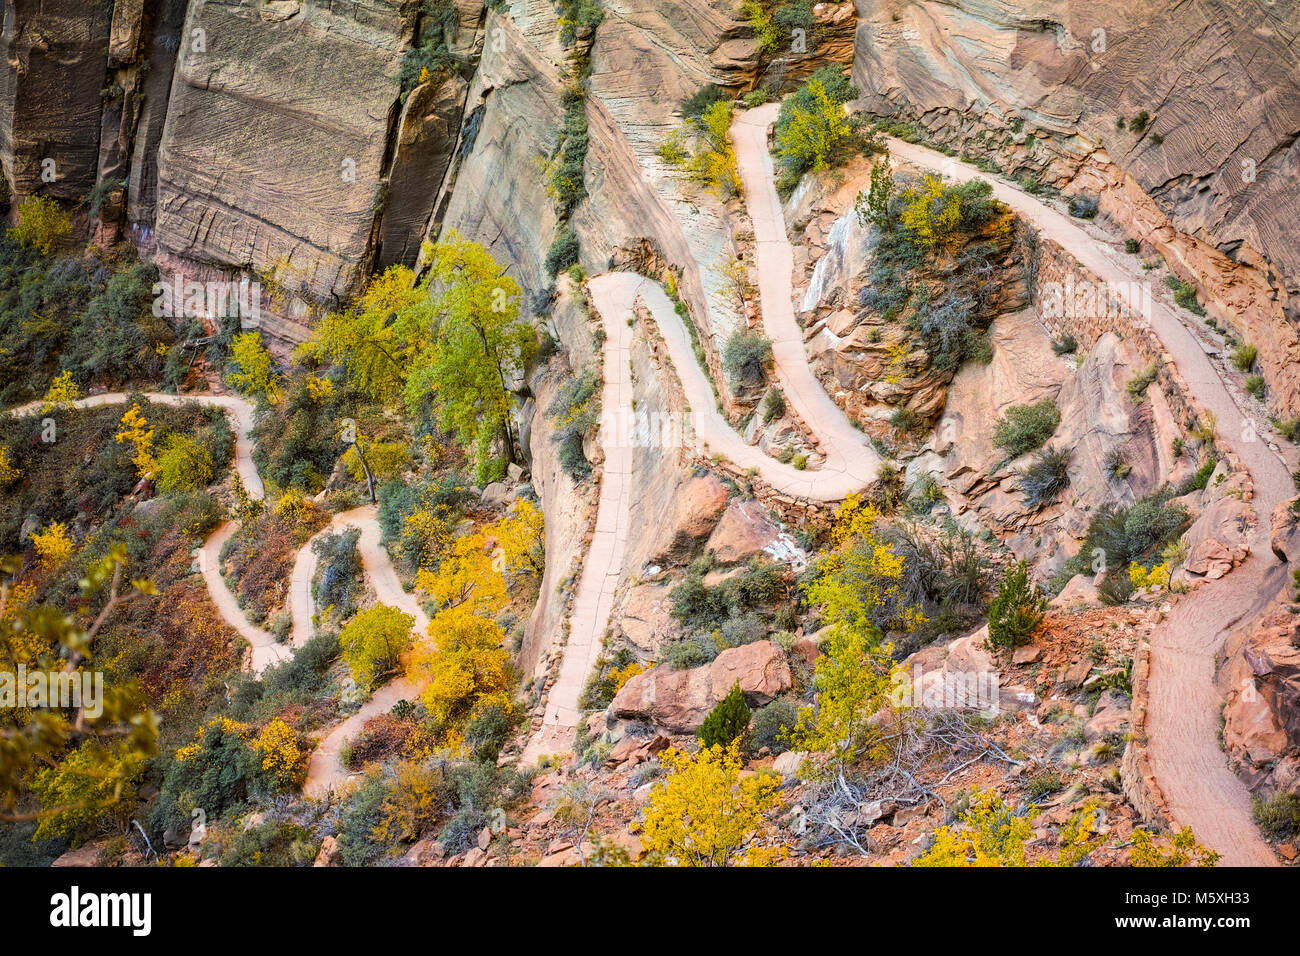 Wiggly Hike up Angel's Landing, Zion National Park - Willy's Wiggles Stock Photo